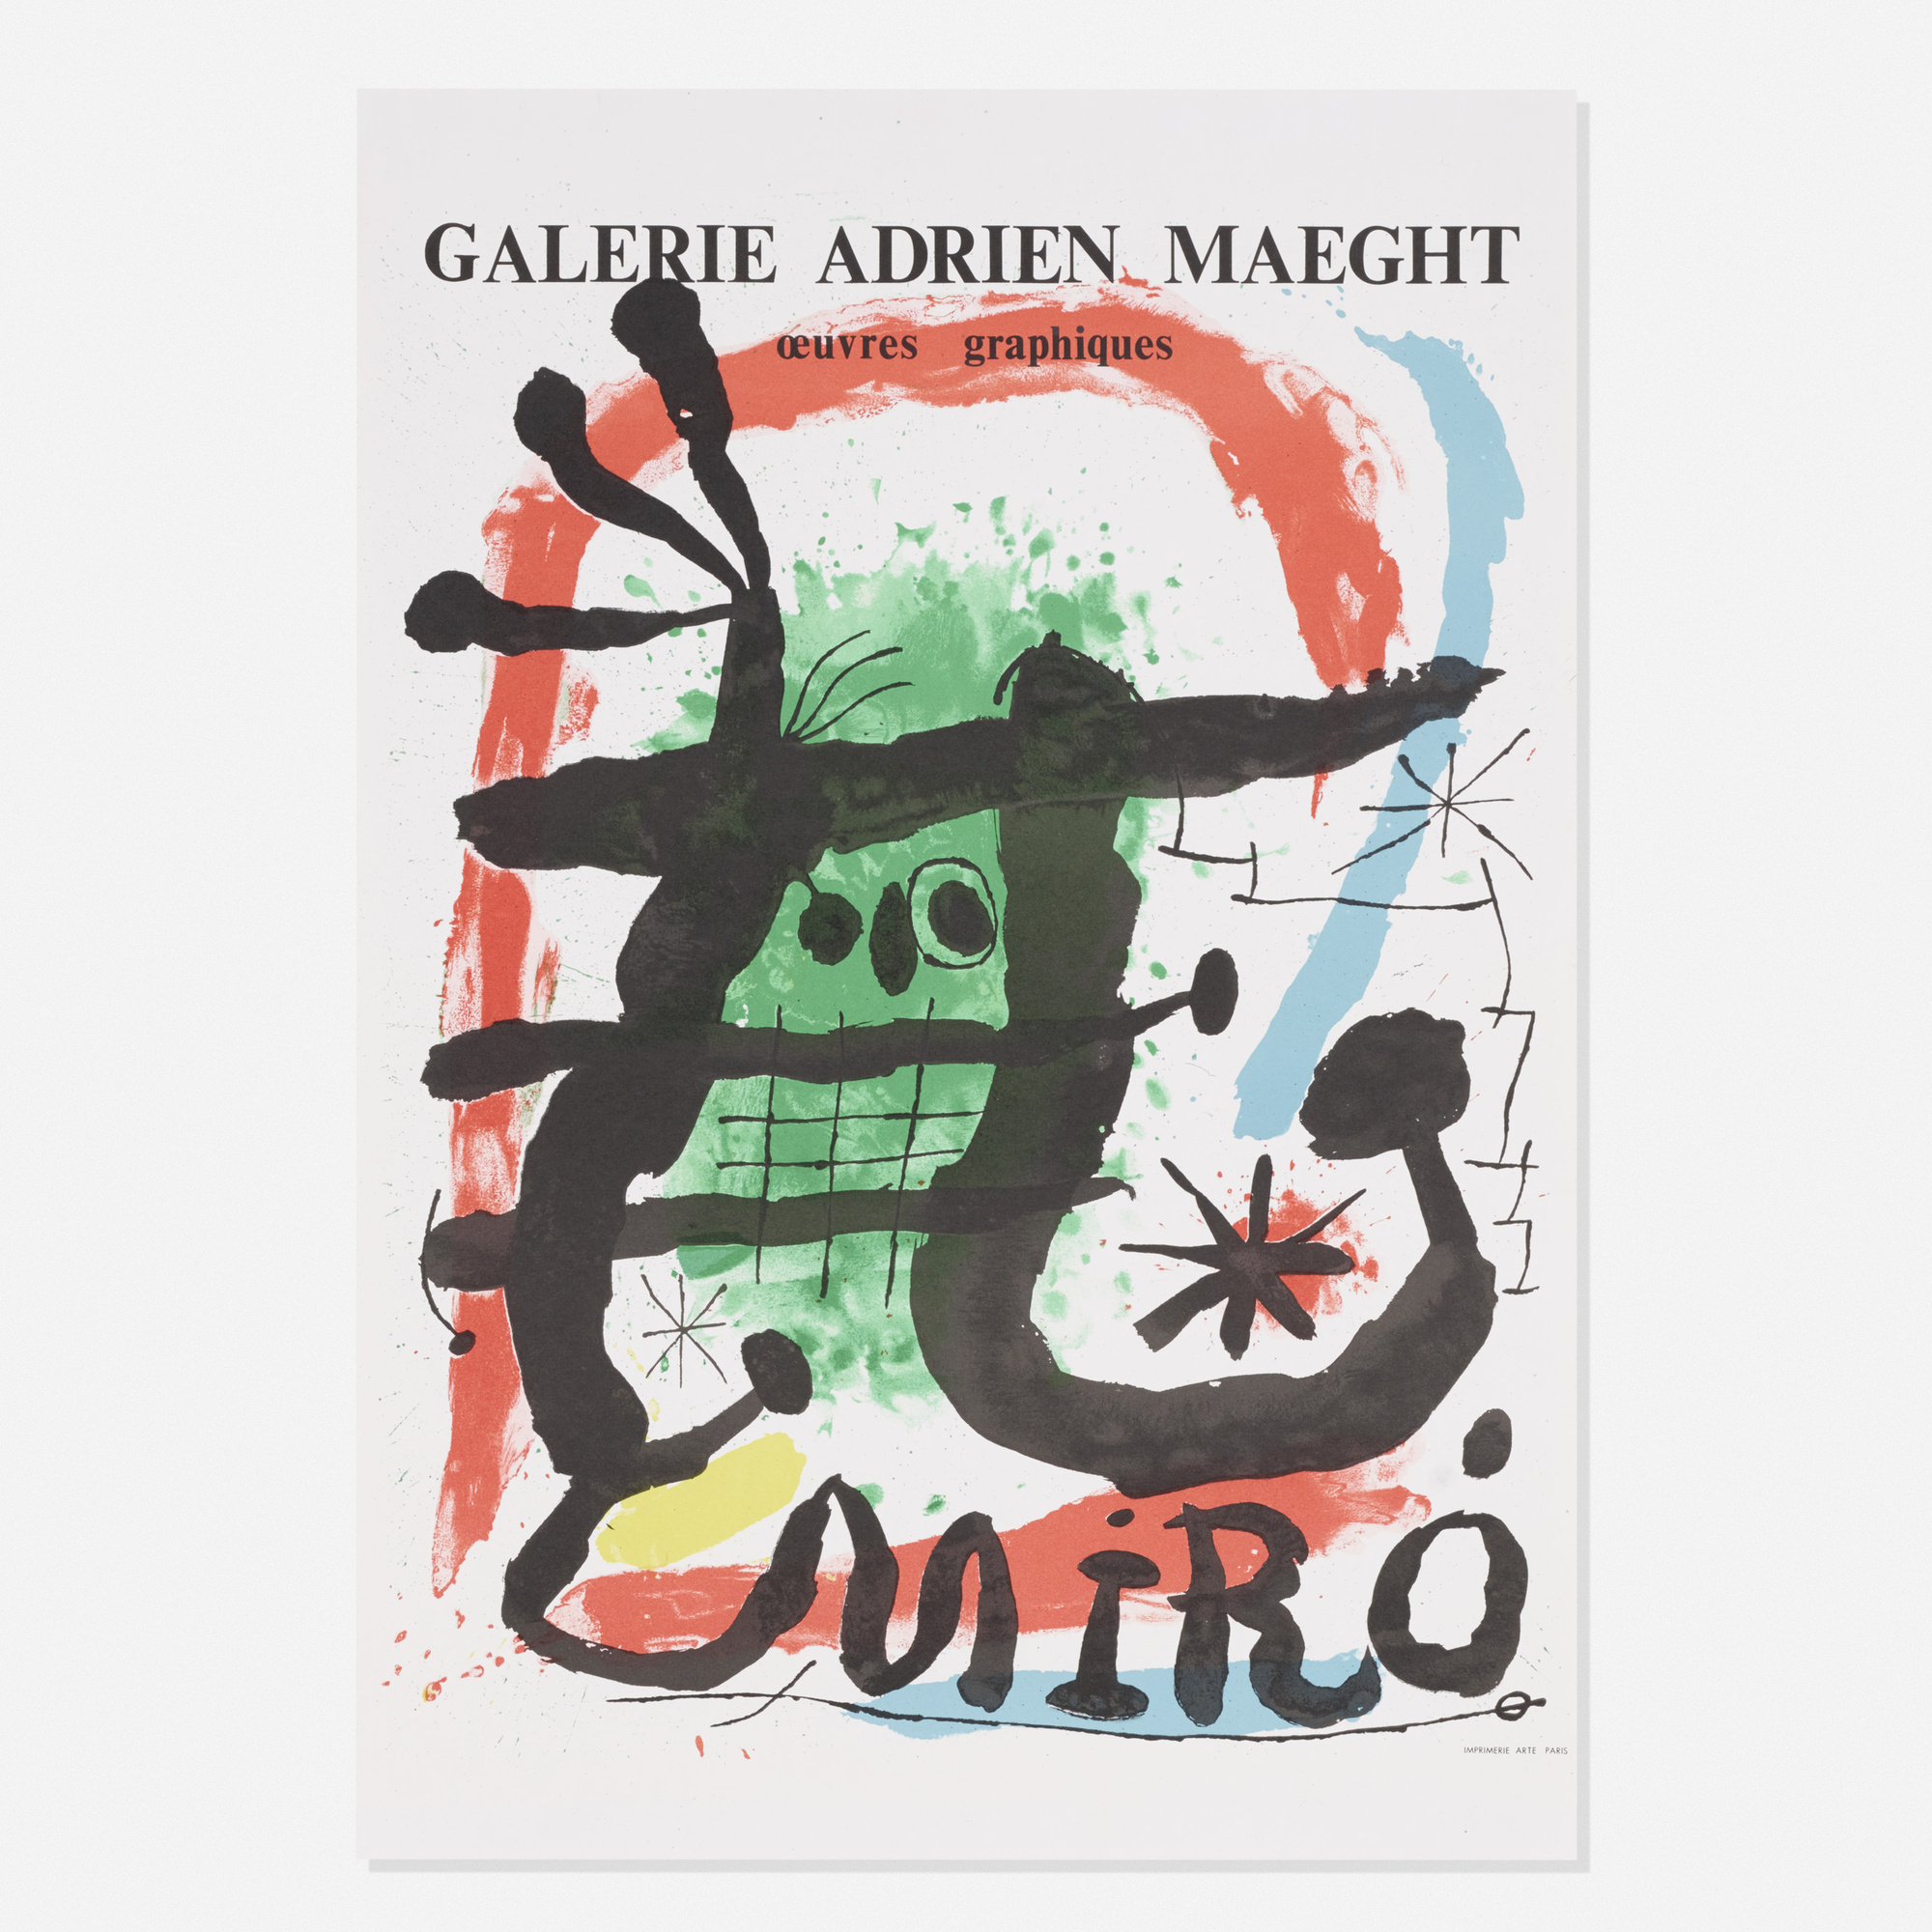 573: After Joan Miro / Galerie Adrien Maeght poster (1 of 1)